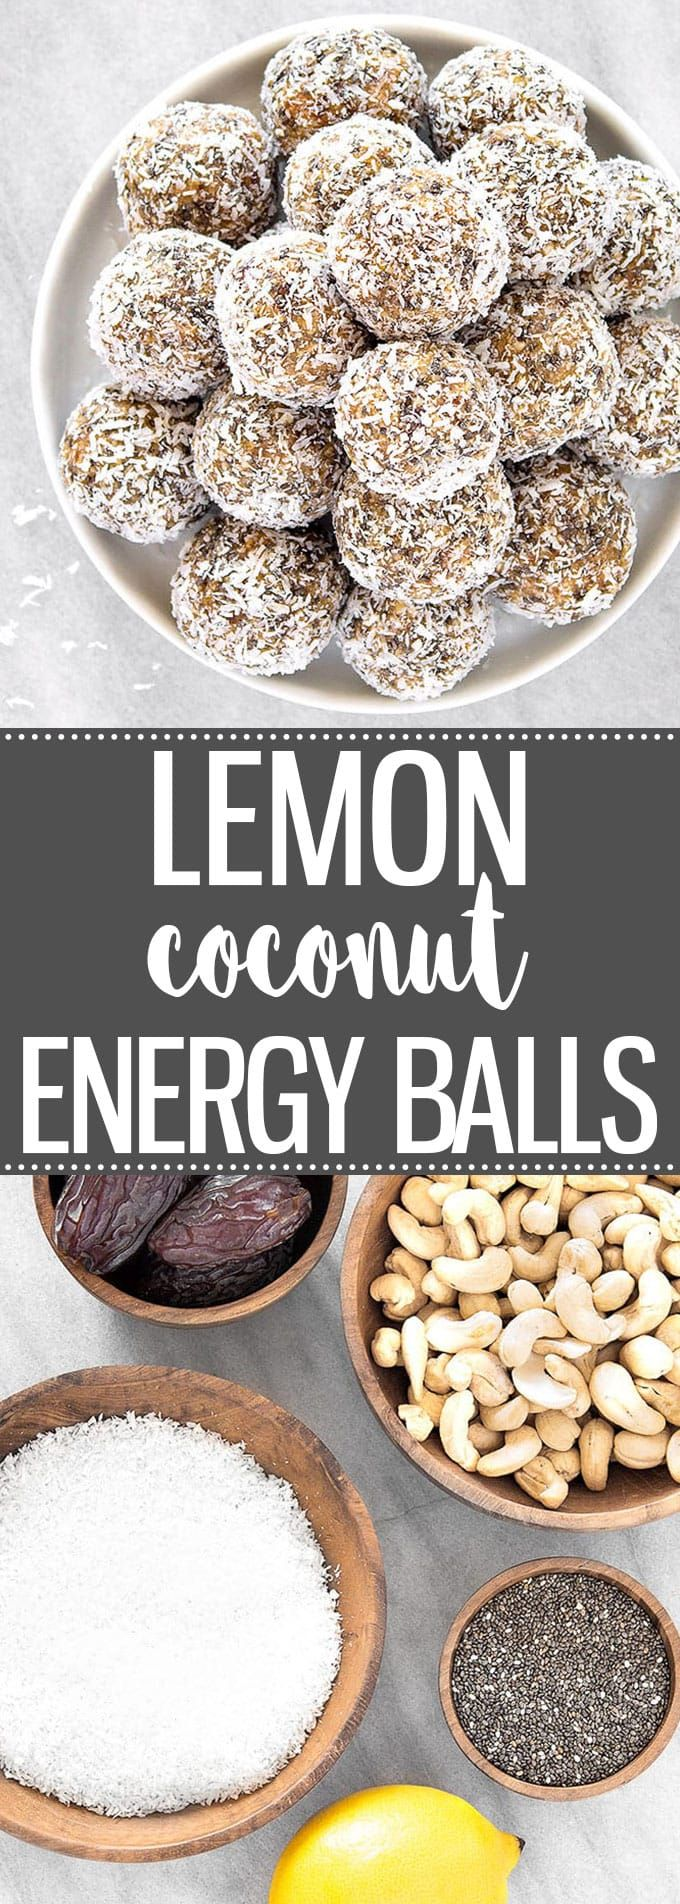 Healthy Lemon Coconut Energy Balls  Nobake snacks packed with cashew nuts coconut dates chia seeds lemon Vegan Paleo GlutenFree